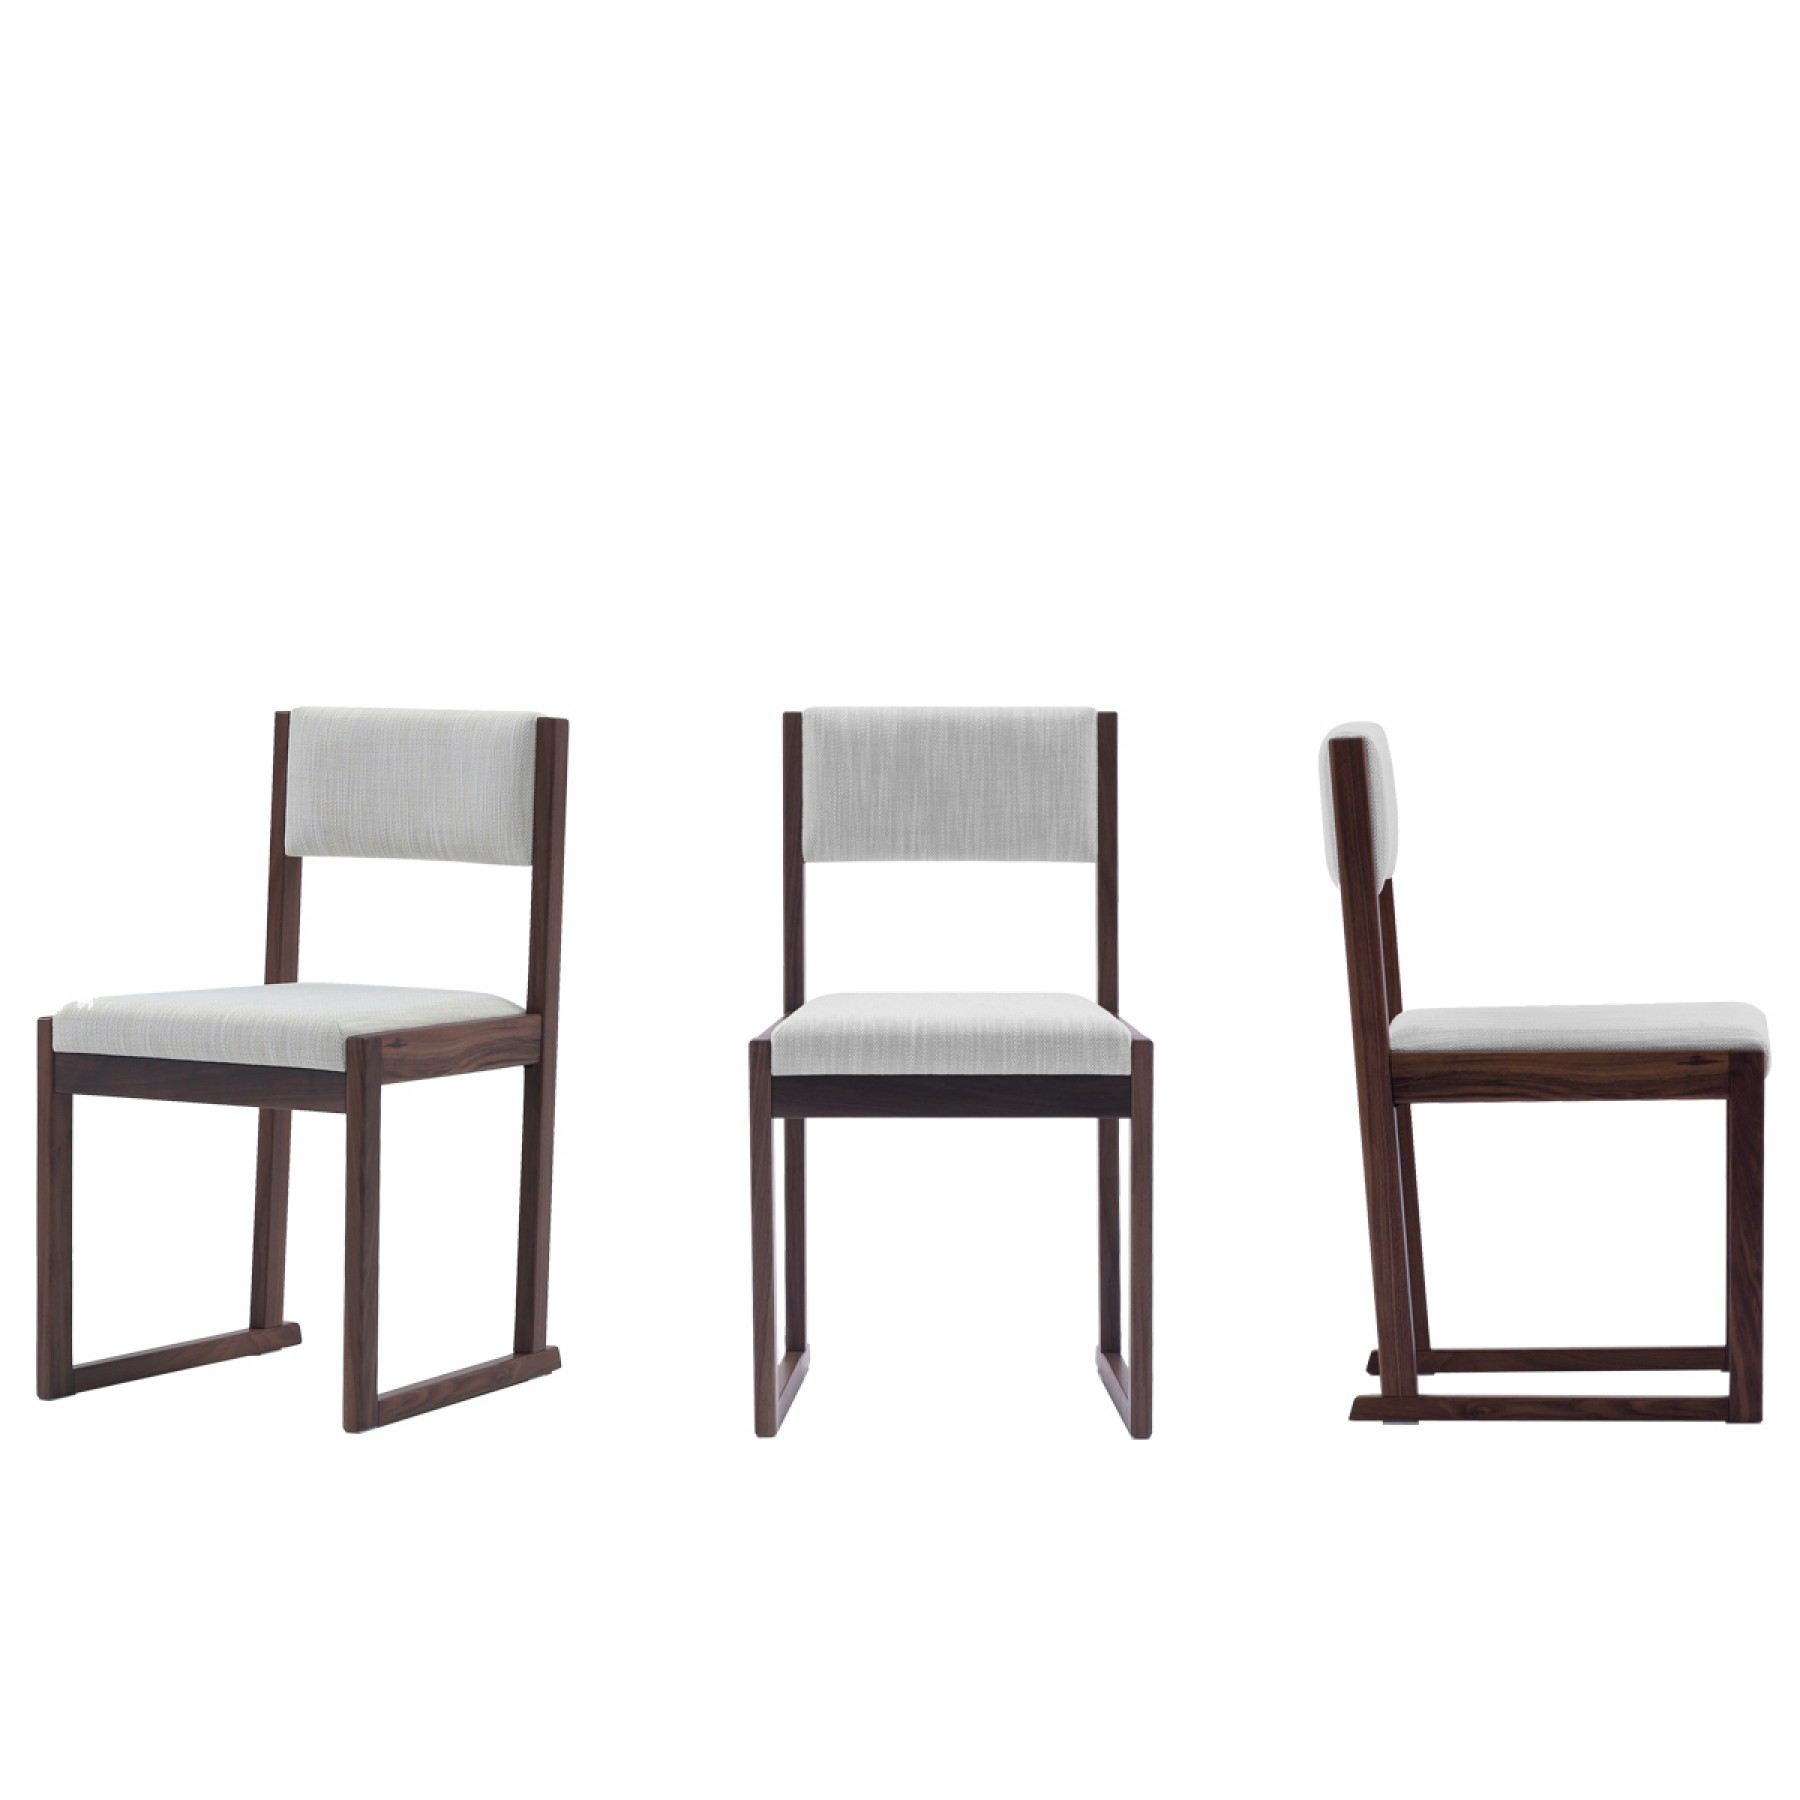 KELL DINING CHAIR WALNUT Beyond Furniture